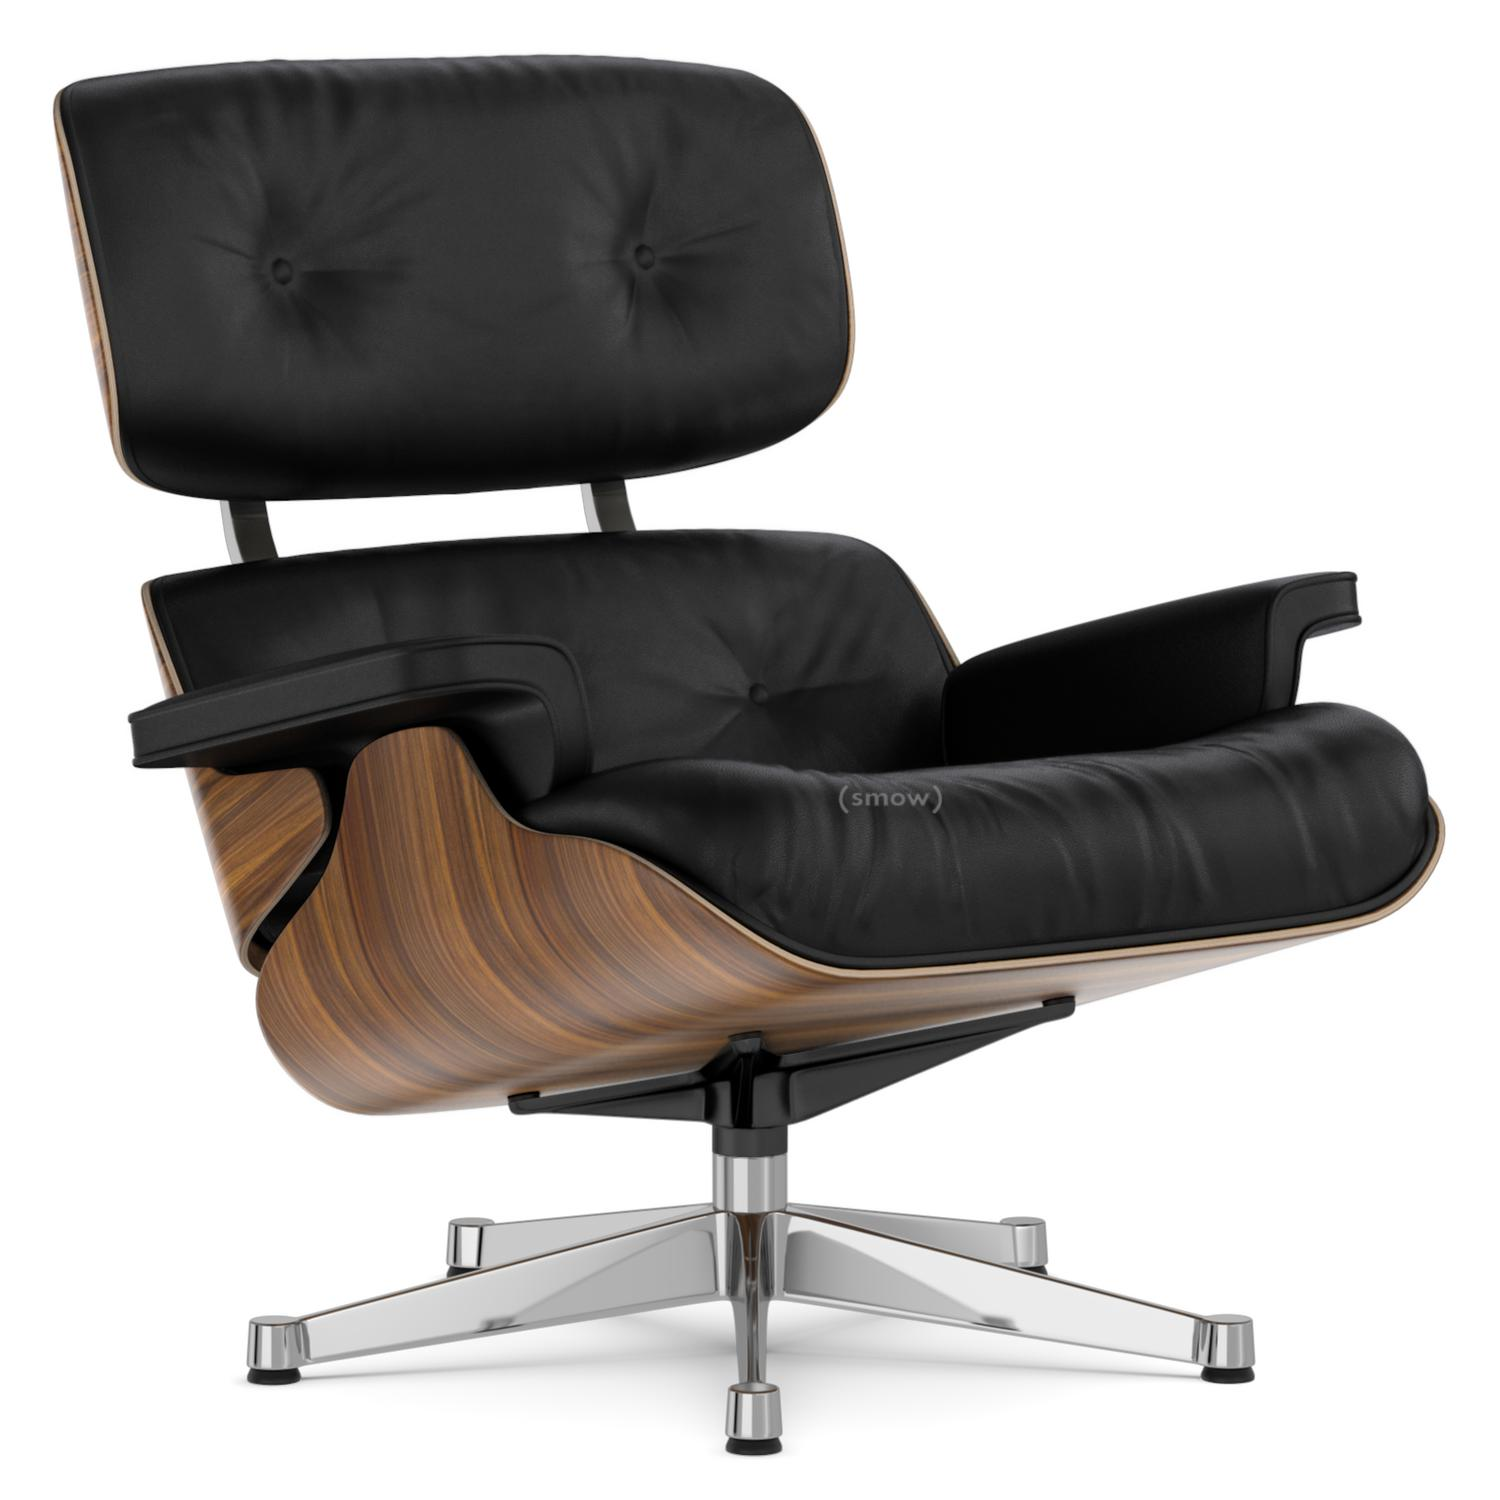 vitra lounge chair walnut with black pigmentation nero 84 cm original height 1956. Black Bedroom Furniture Sets. Home Design Ideas